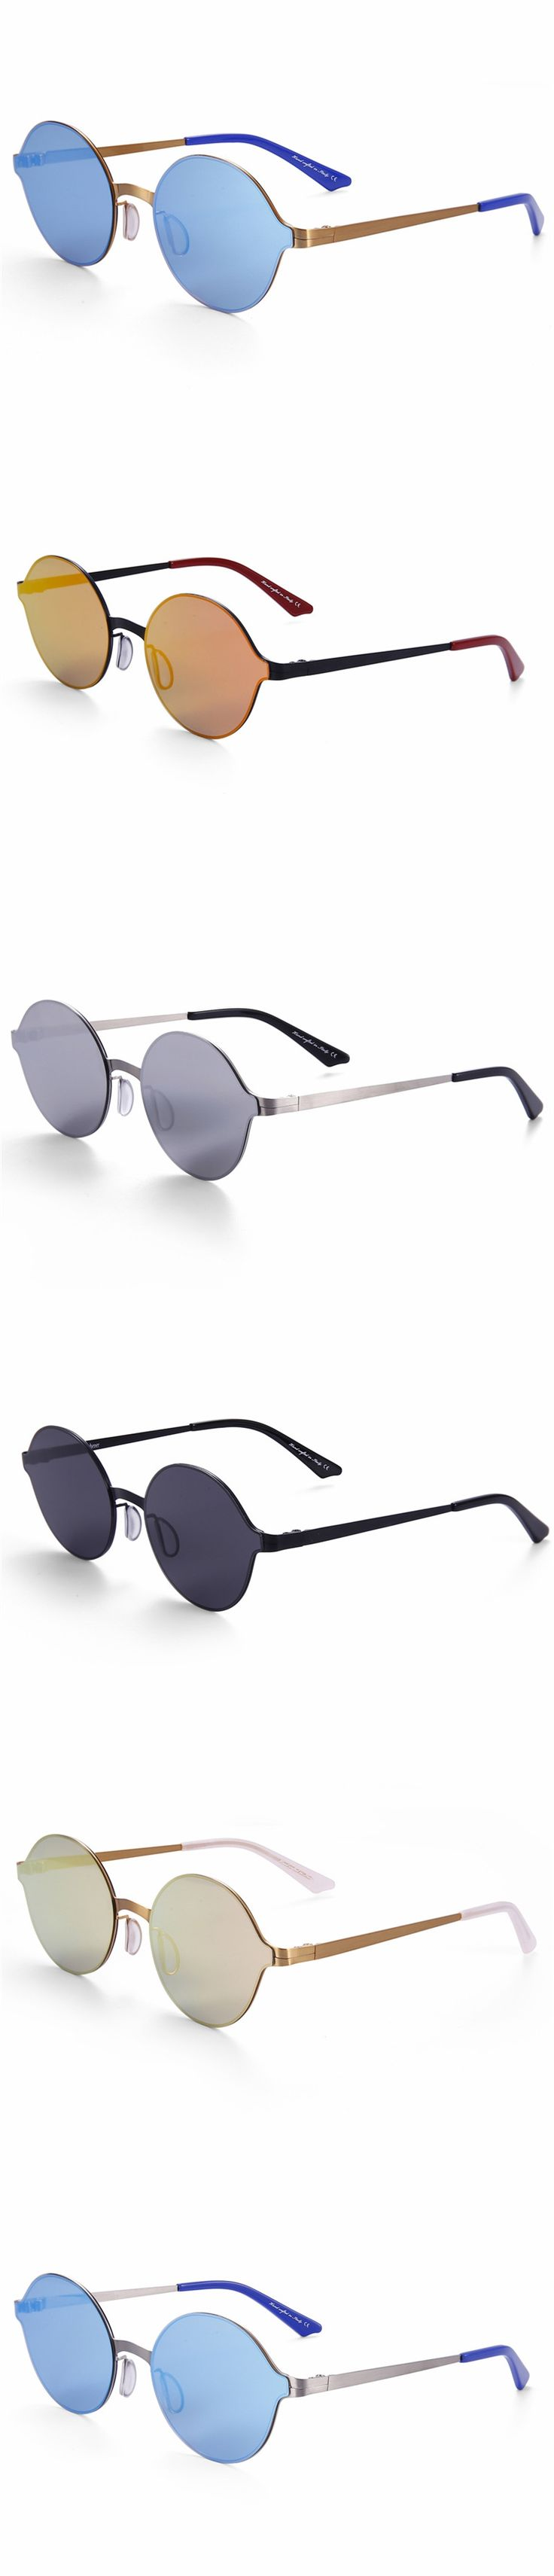 High quality metal material small frame eye glasses frames men and women retro round traveling and beach sunglasses